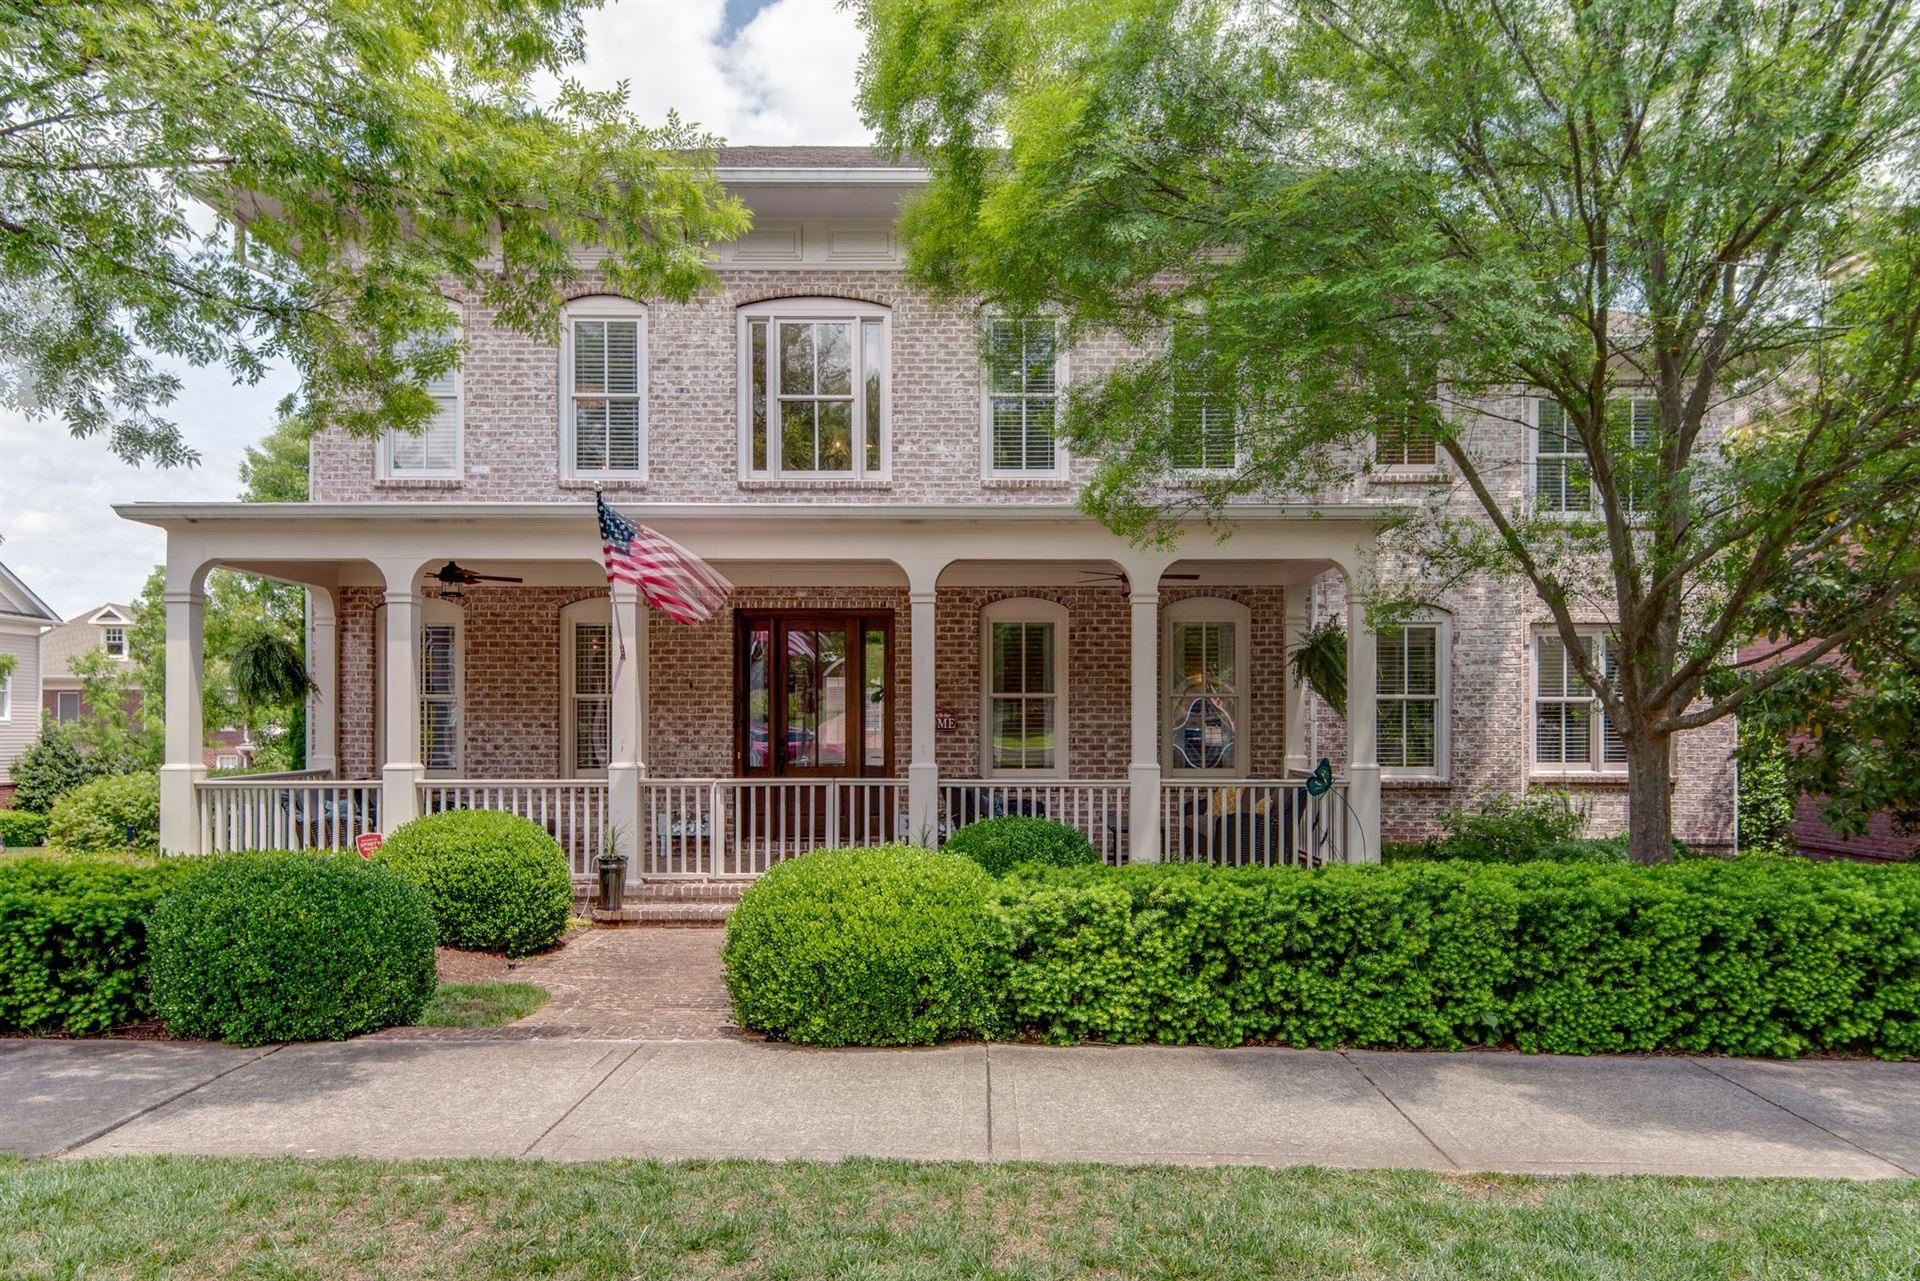 Photo of 1718 Championship Blvd, Franklin, TN 37064 (MLS # 2150841)